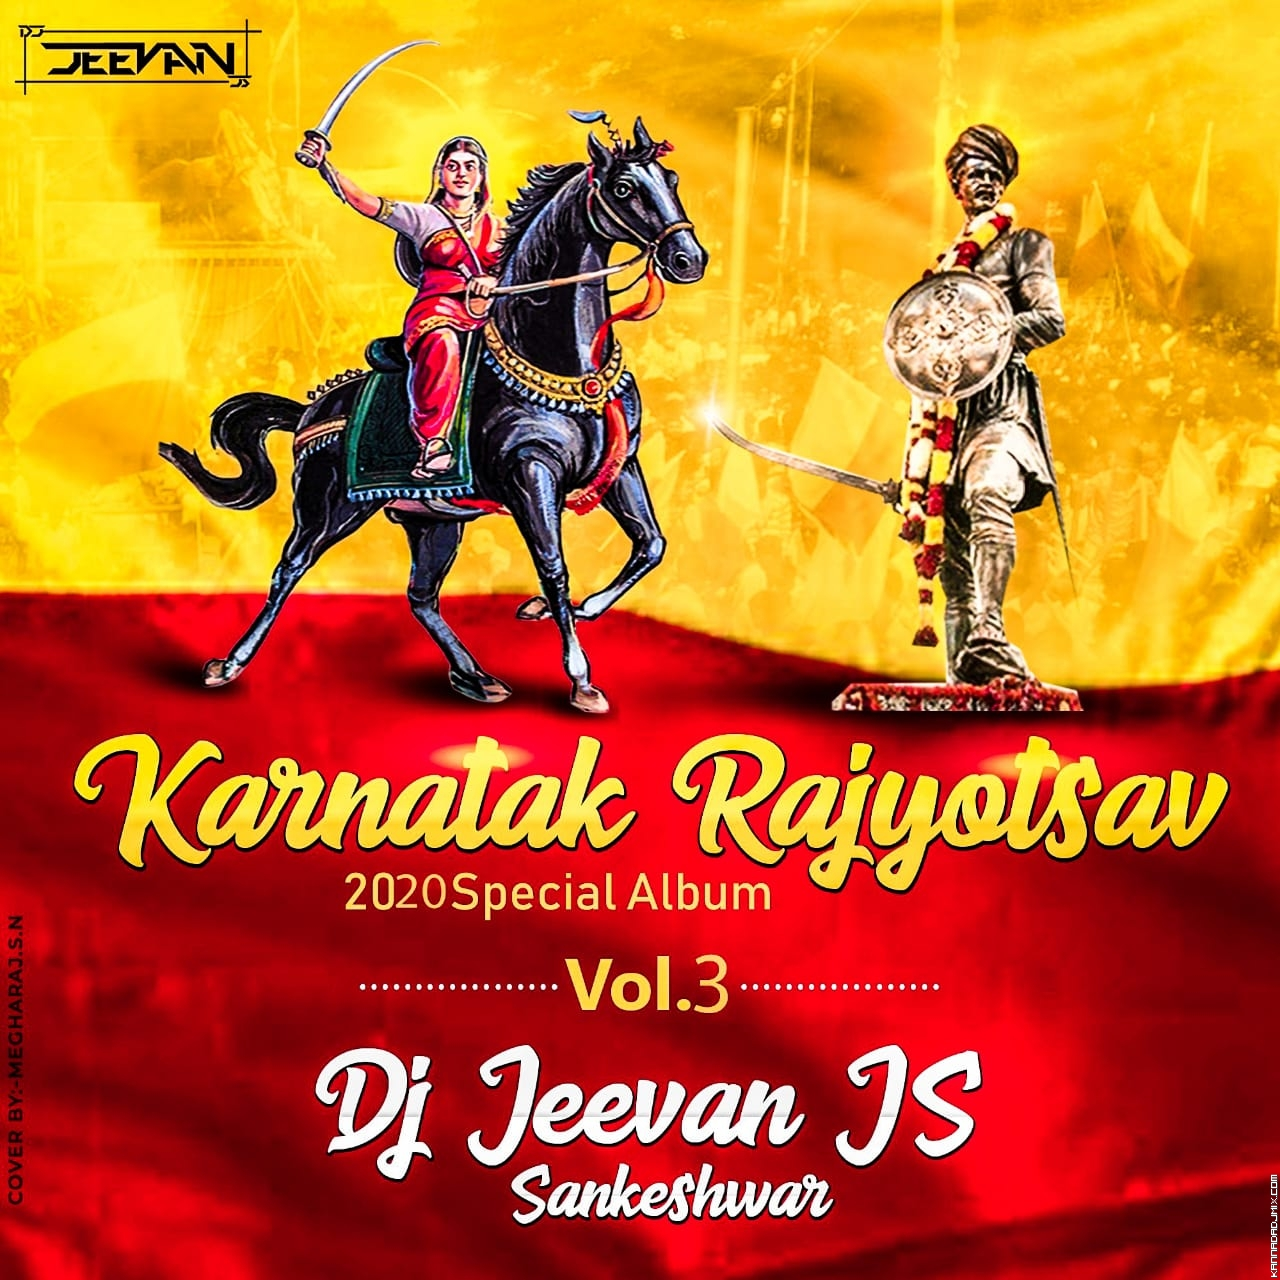 kittur Rani Channamage Jai Theme 2020 Mix by dj jeevan js sankeshwar.mp3